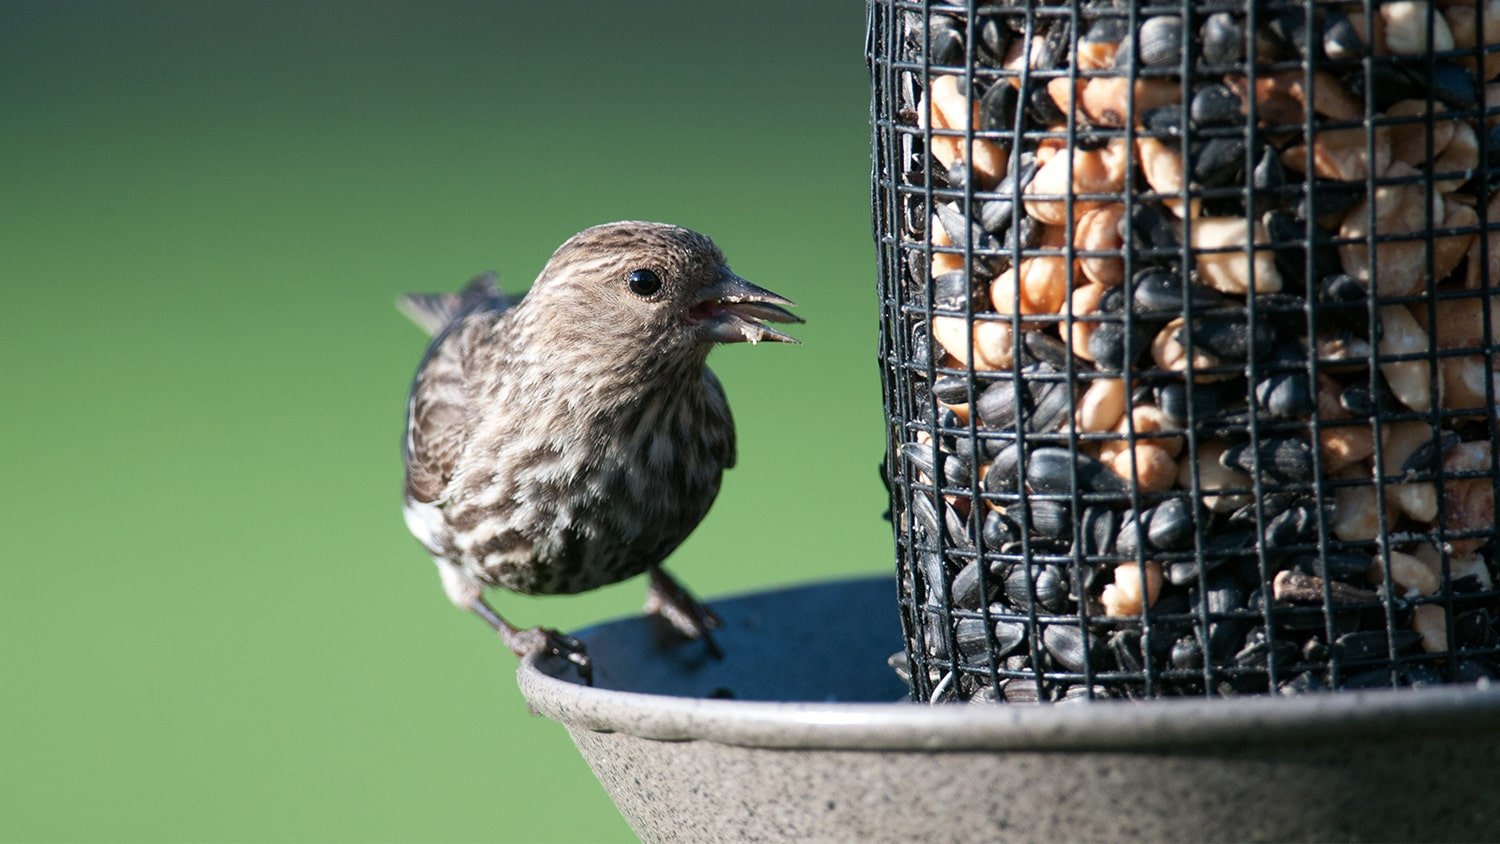 Cleaning for Healthy Backyard Birds